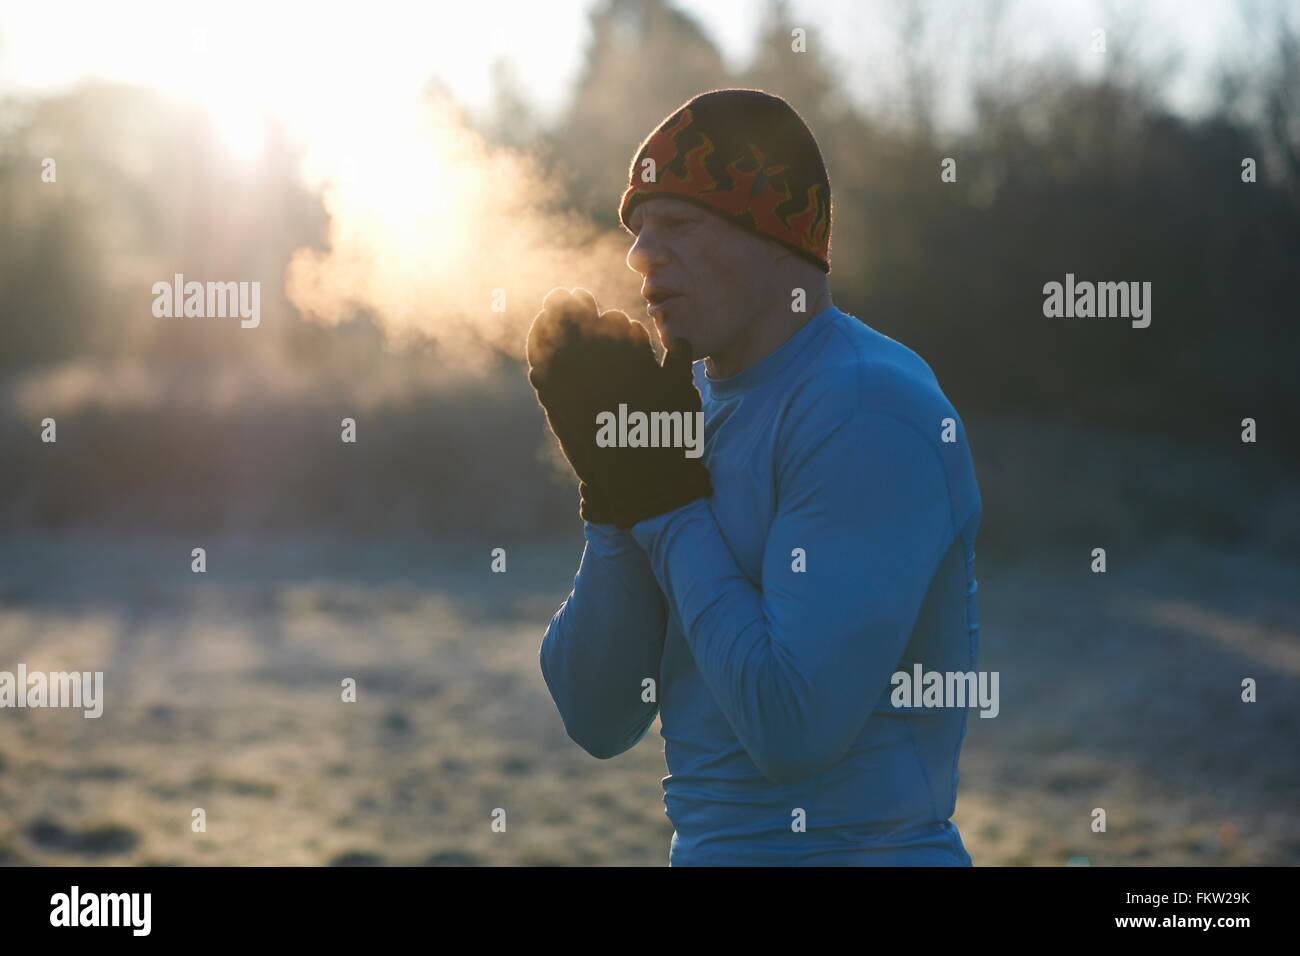 Runner wearing knit hat and gloves, rubbing hands together, breathing cold air - Stock Image